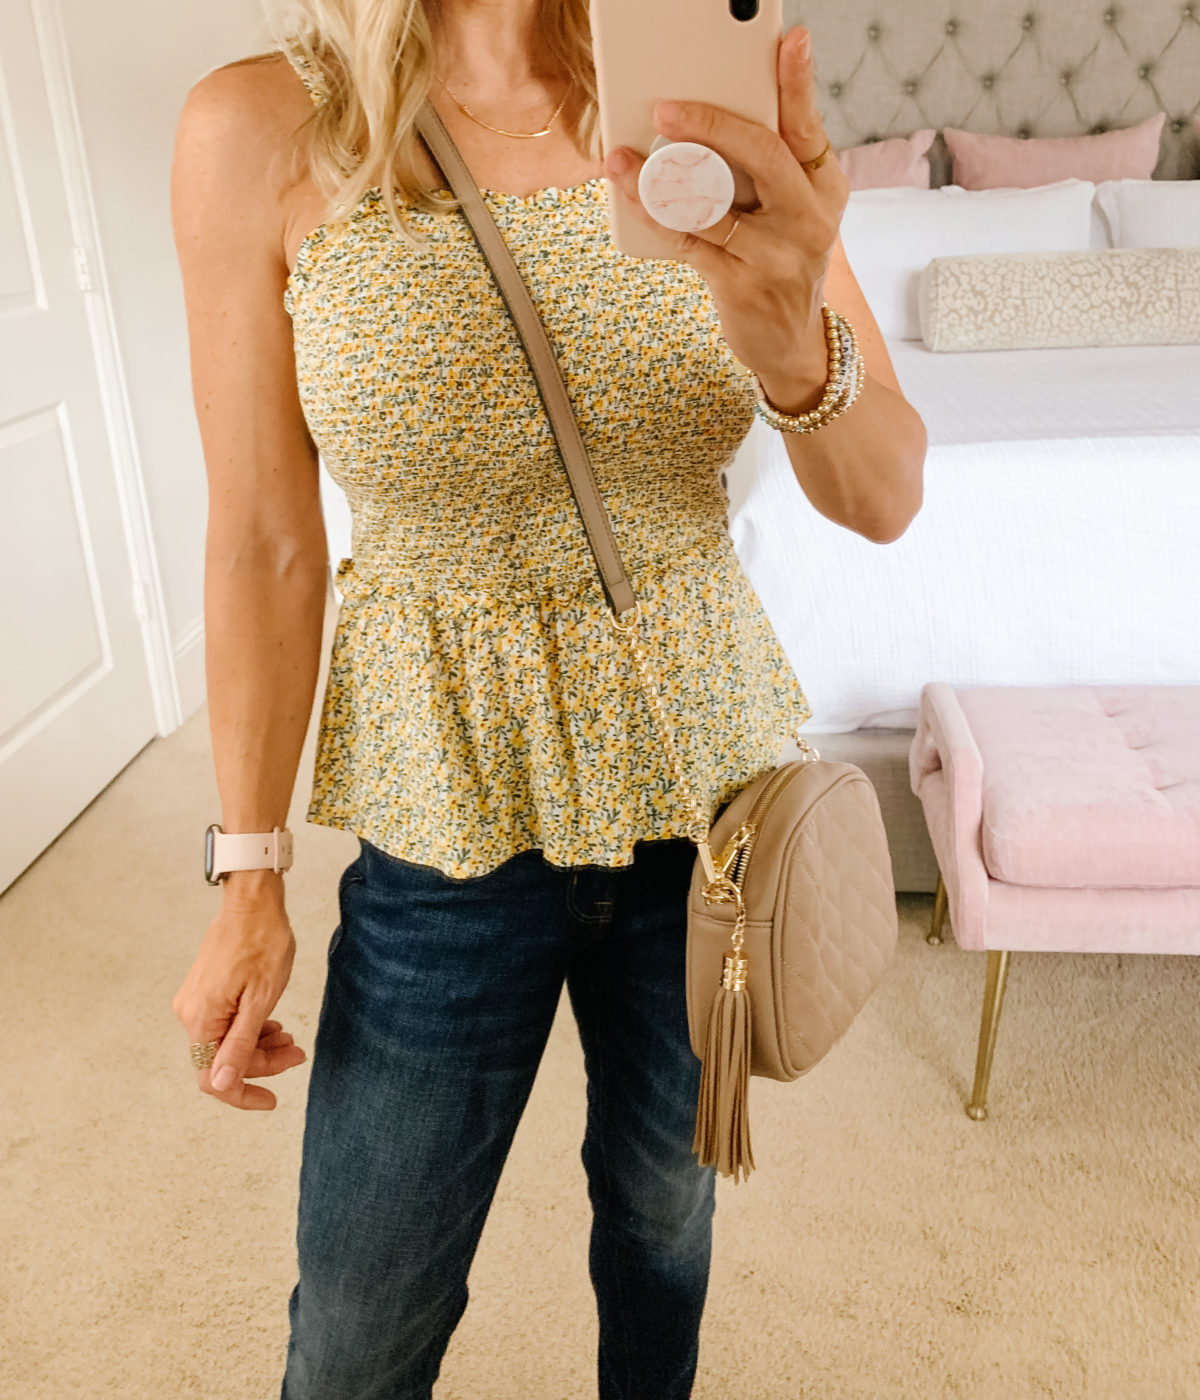 Old Navy Fashion, Smocked Top, Jeans, Crossbody